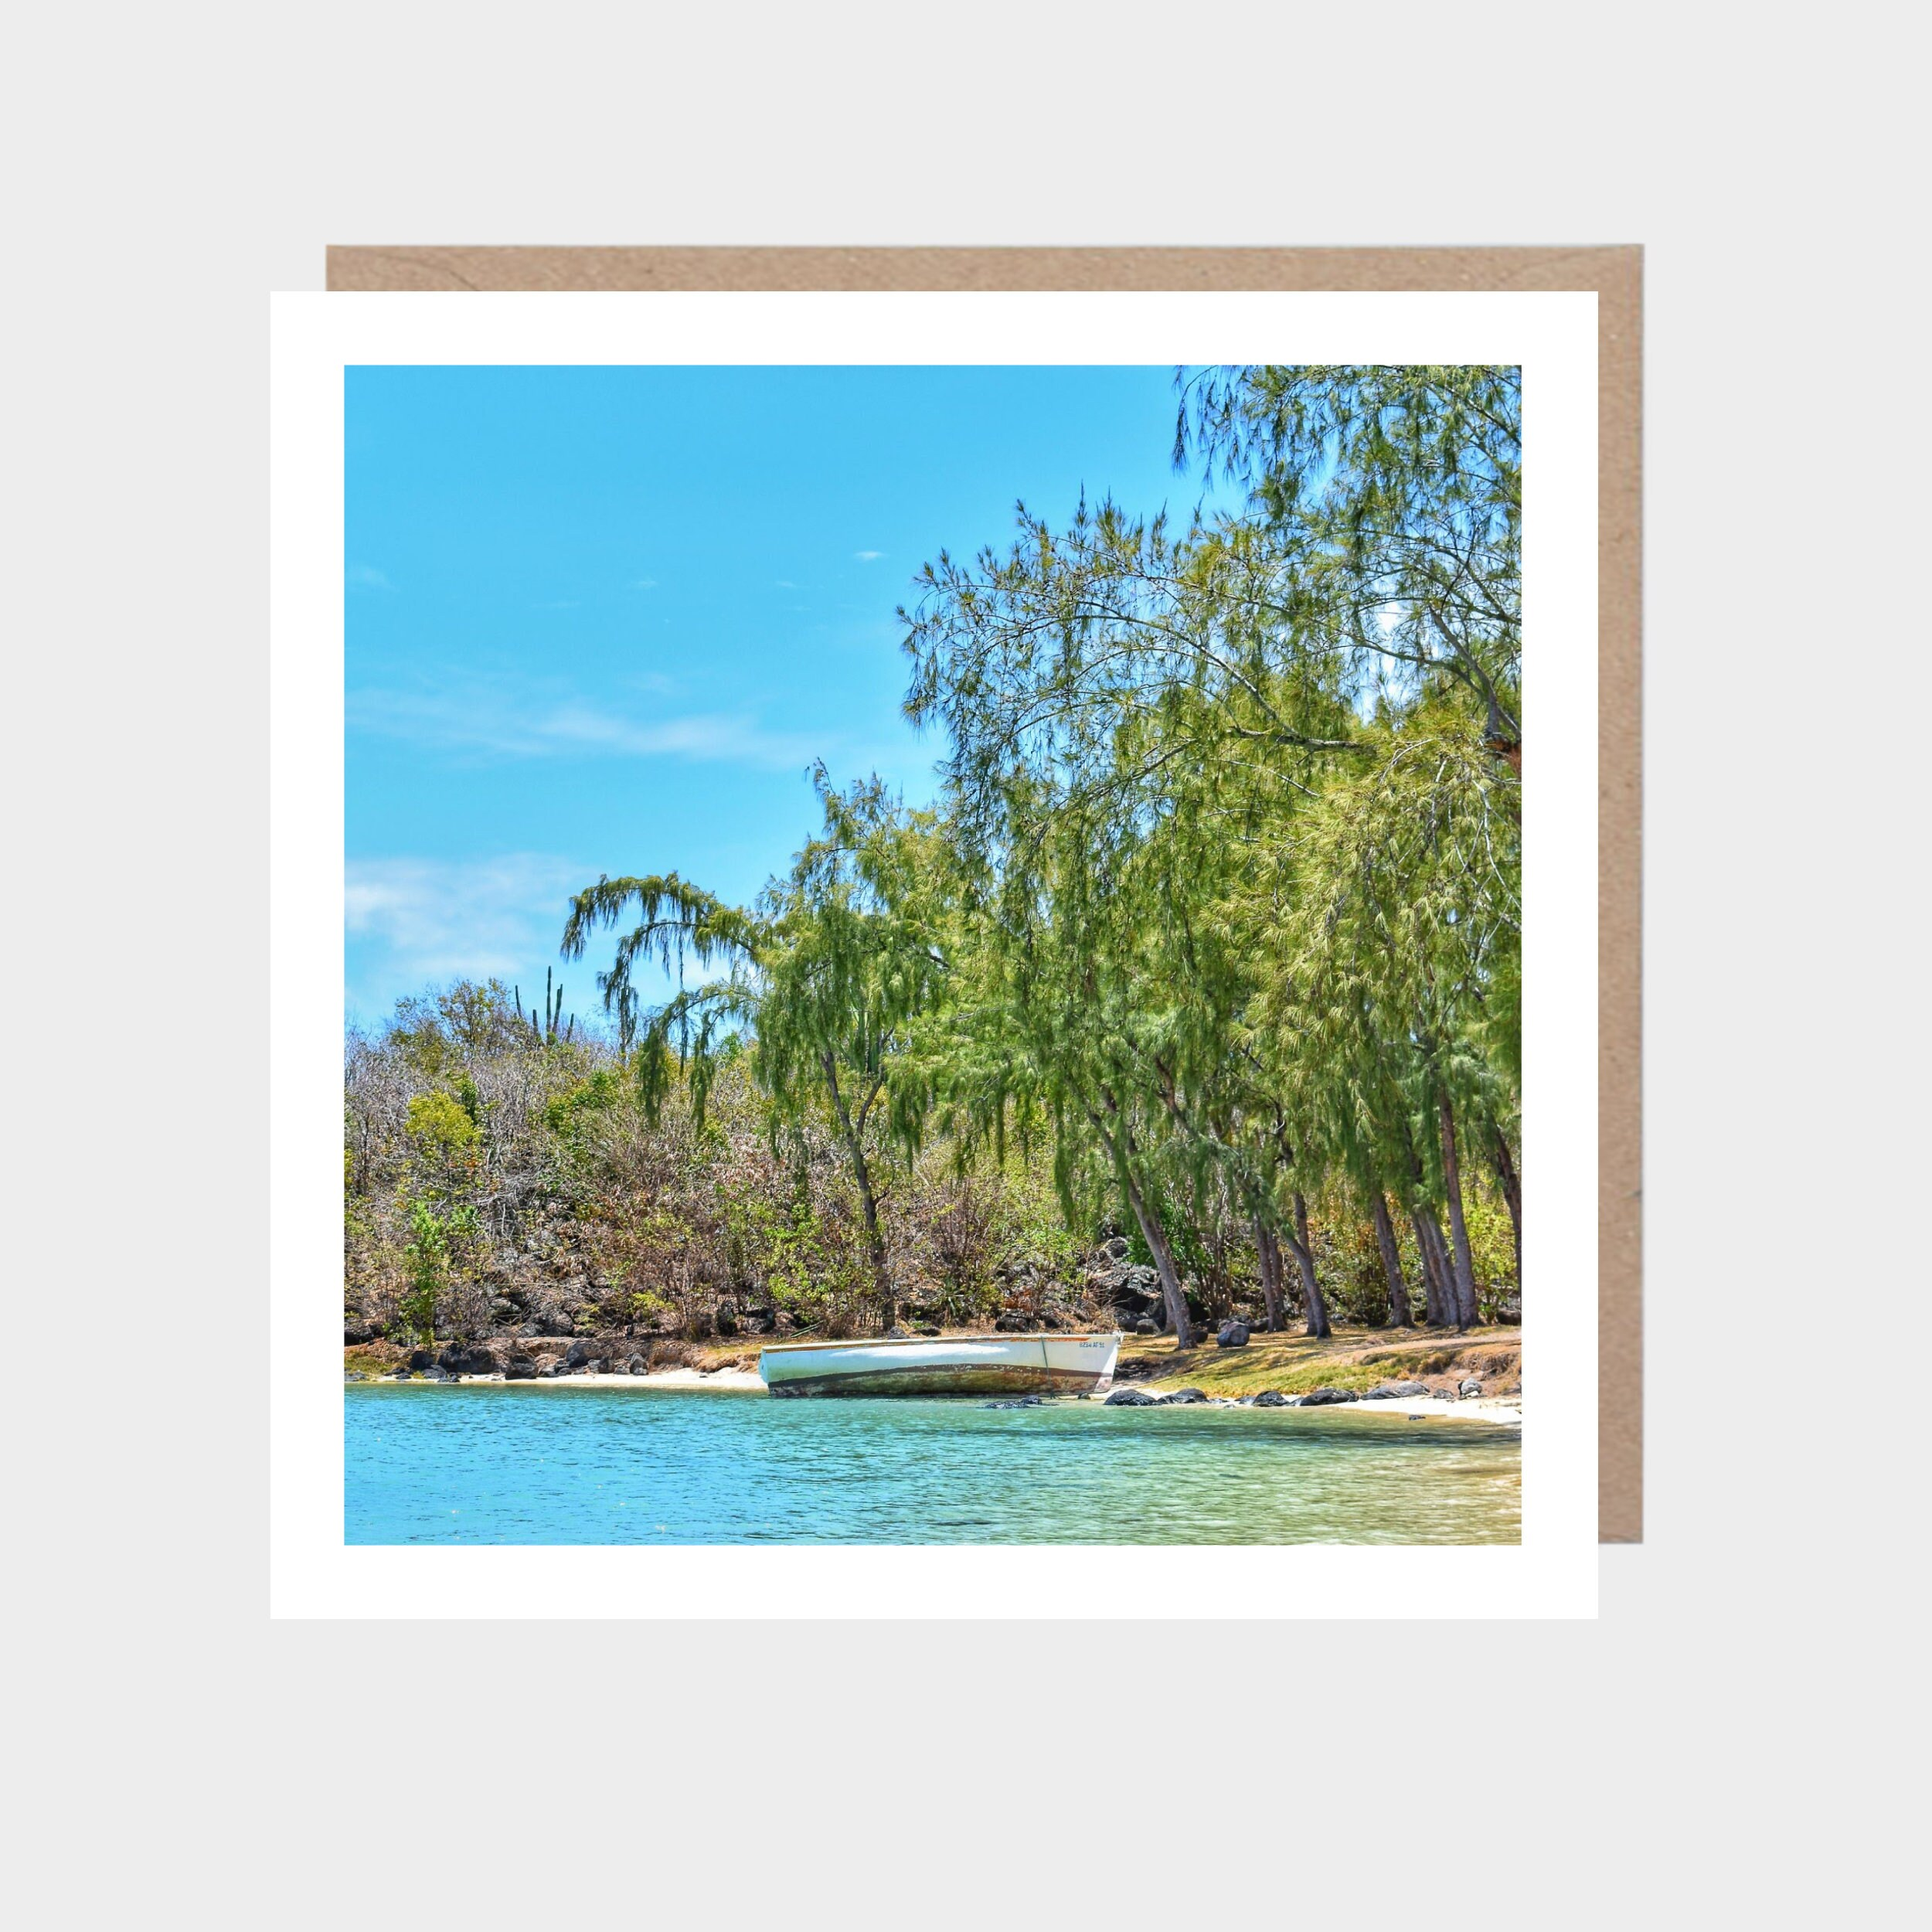 Square card with a photo of a beautiful tropical beach, with a brown kraft envelope